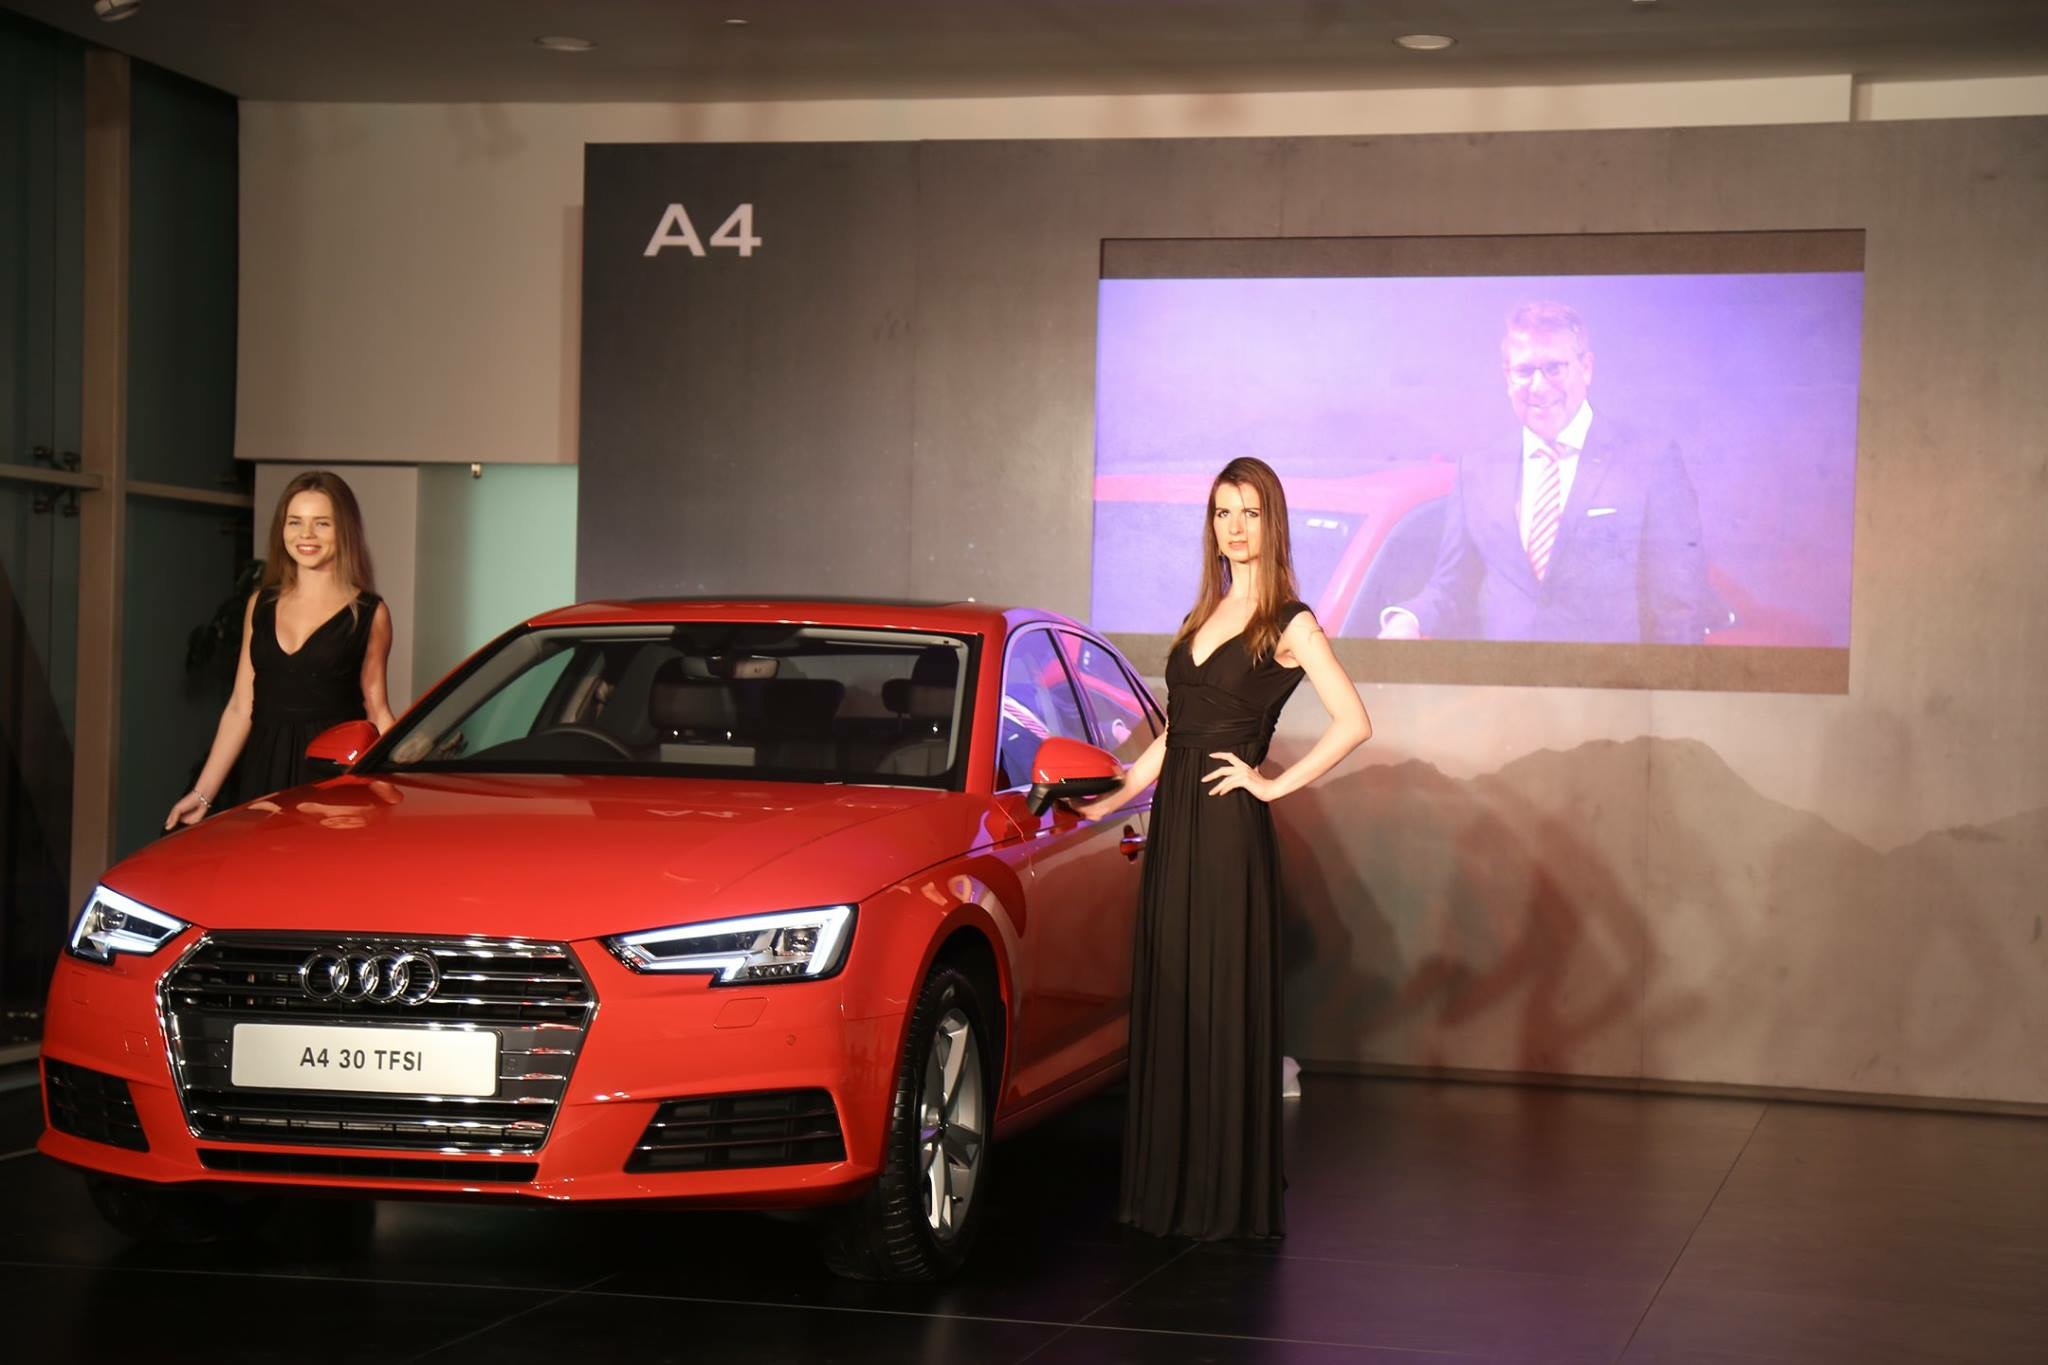 New Audi A4 at Audi Gurgaon